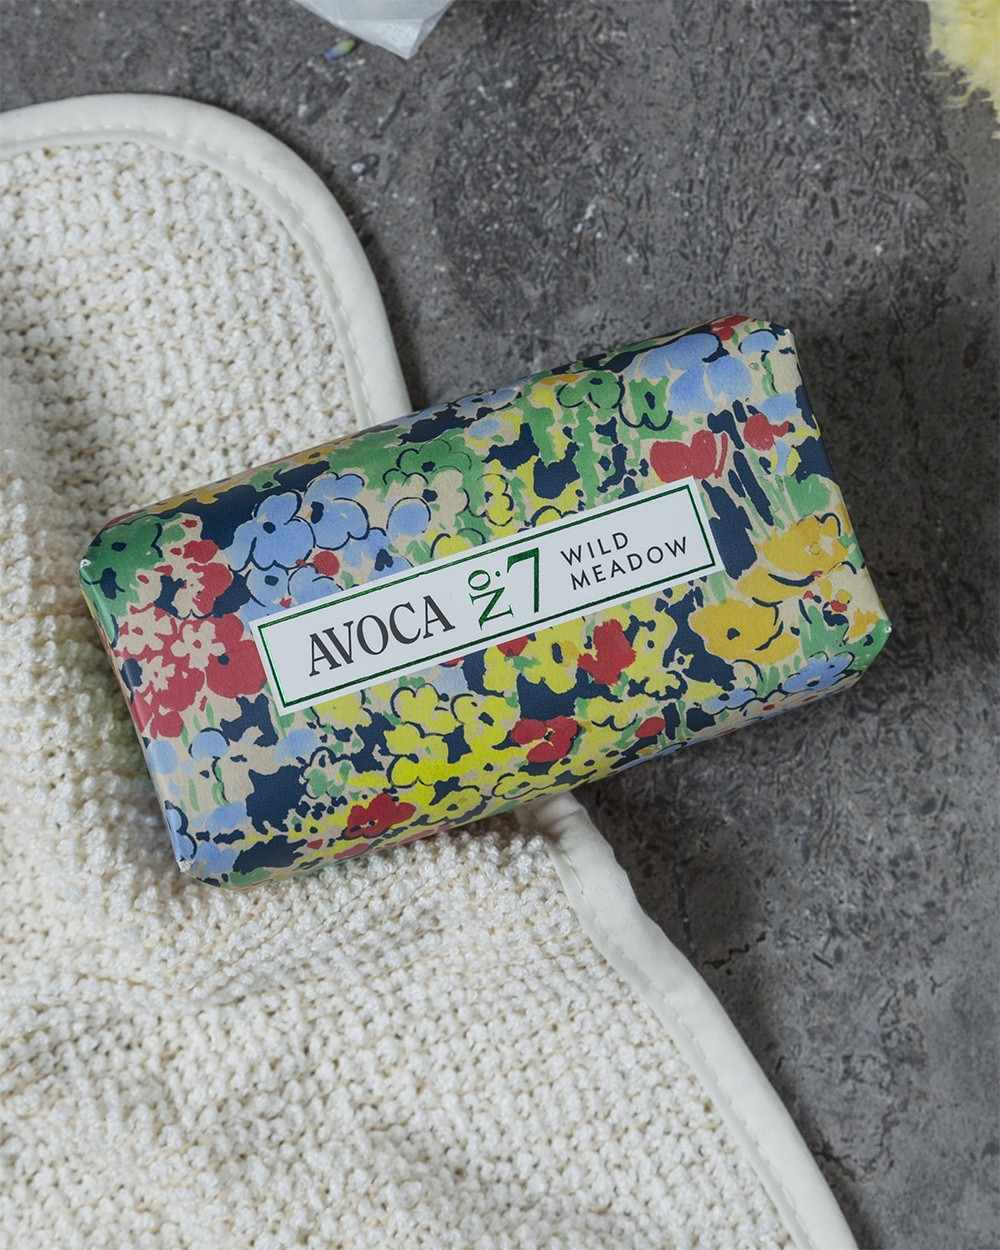 Avoca No 7 Soap - Wild Meadow